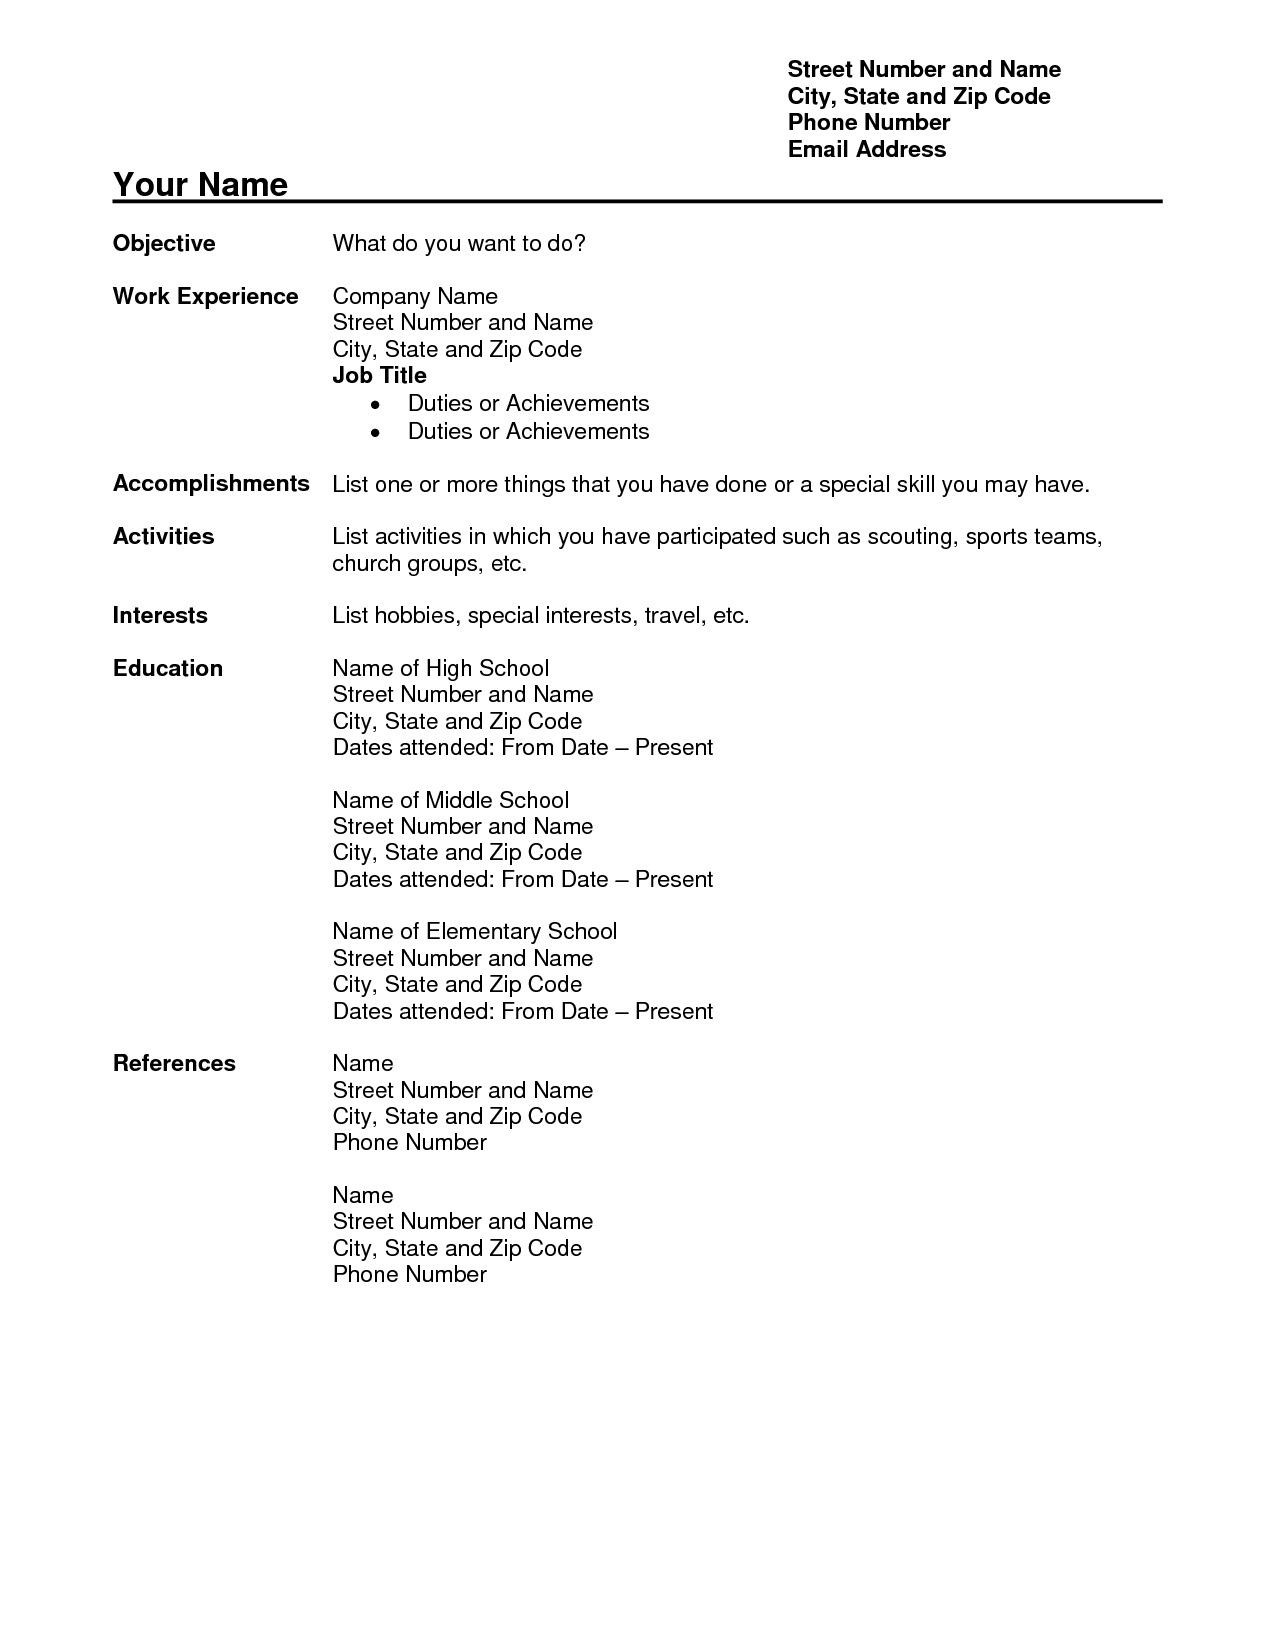 Free Teacher Resume Templates Download Free Teacher Resume Templates  Download, Free Teacher Resume Templates Microsoft  Free Resume Templates Microsoft Word Download